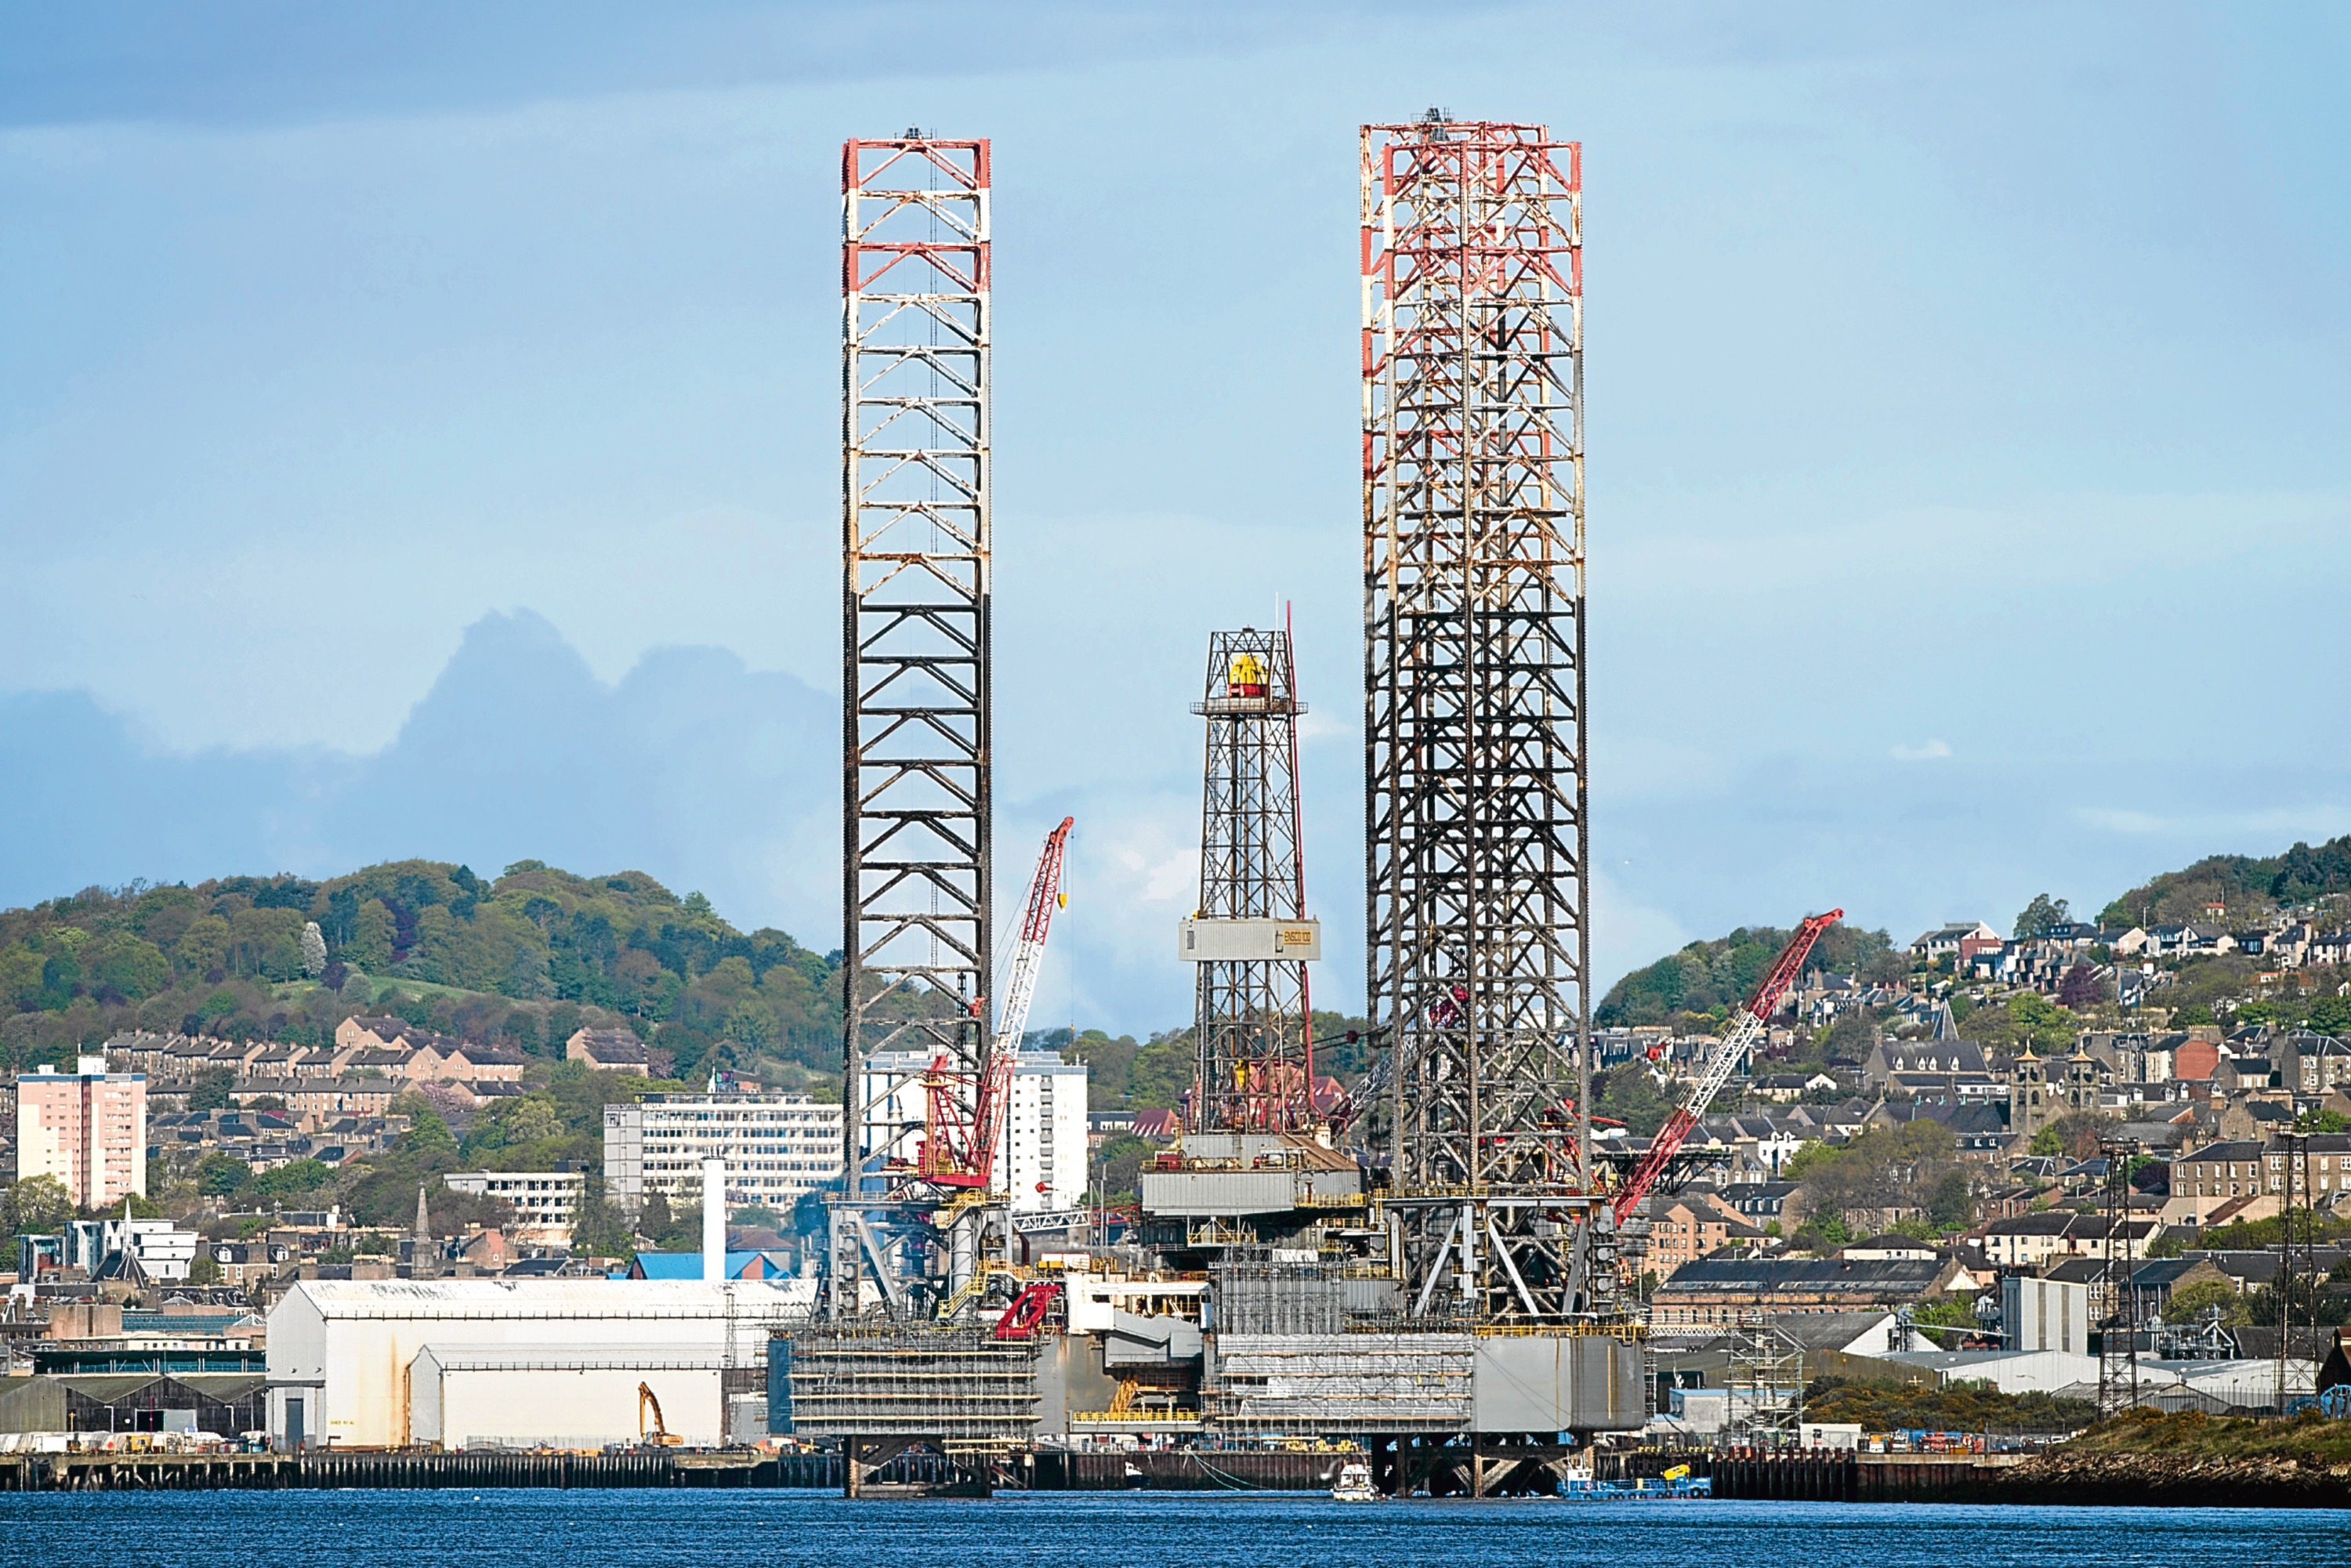 Oil rig at Dundee Harbour